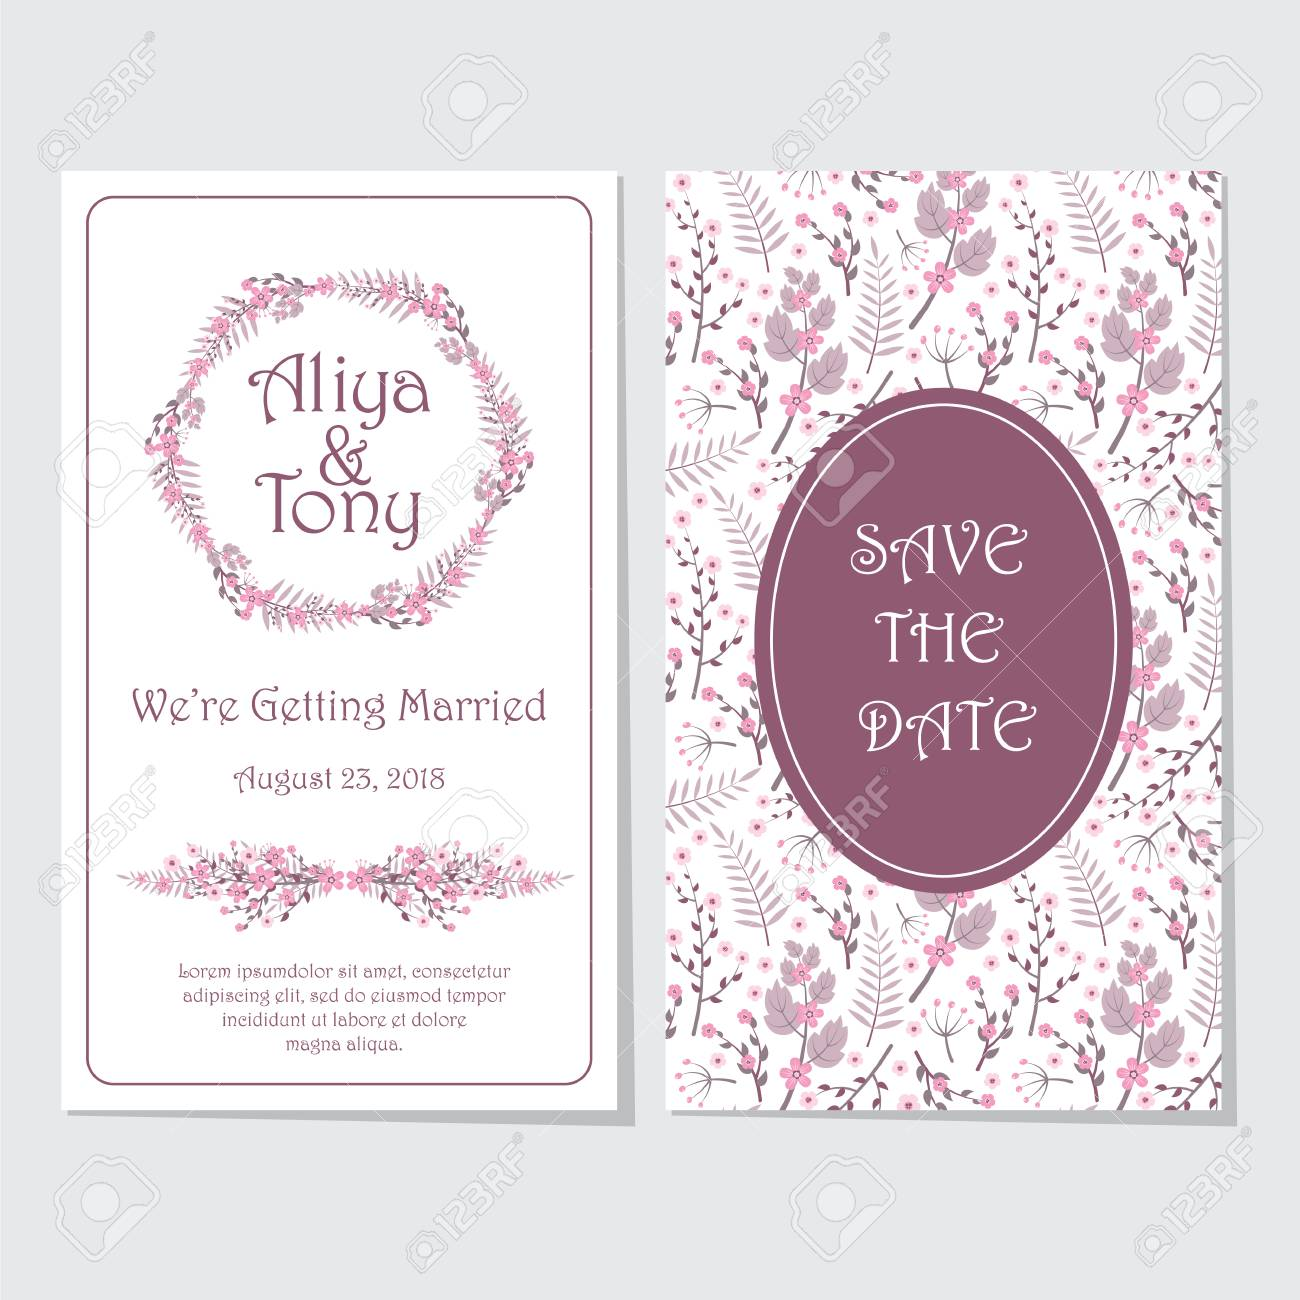 Wedding Invitation Card, Vector Design Template With Pink And ...